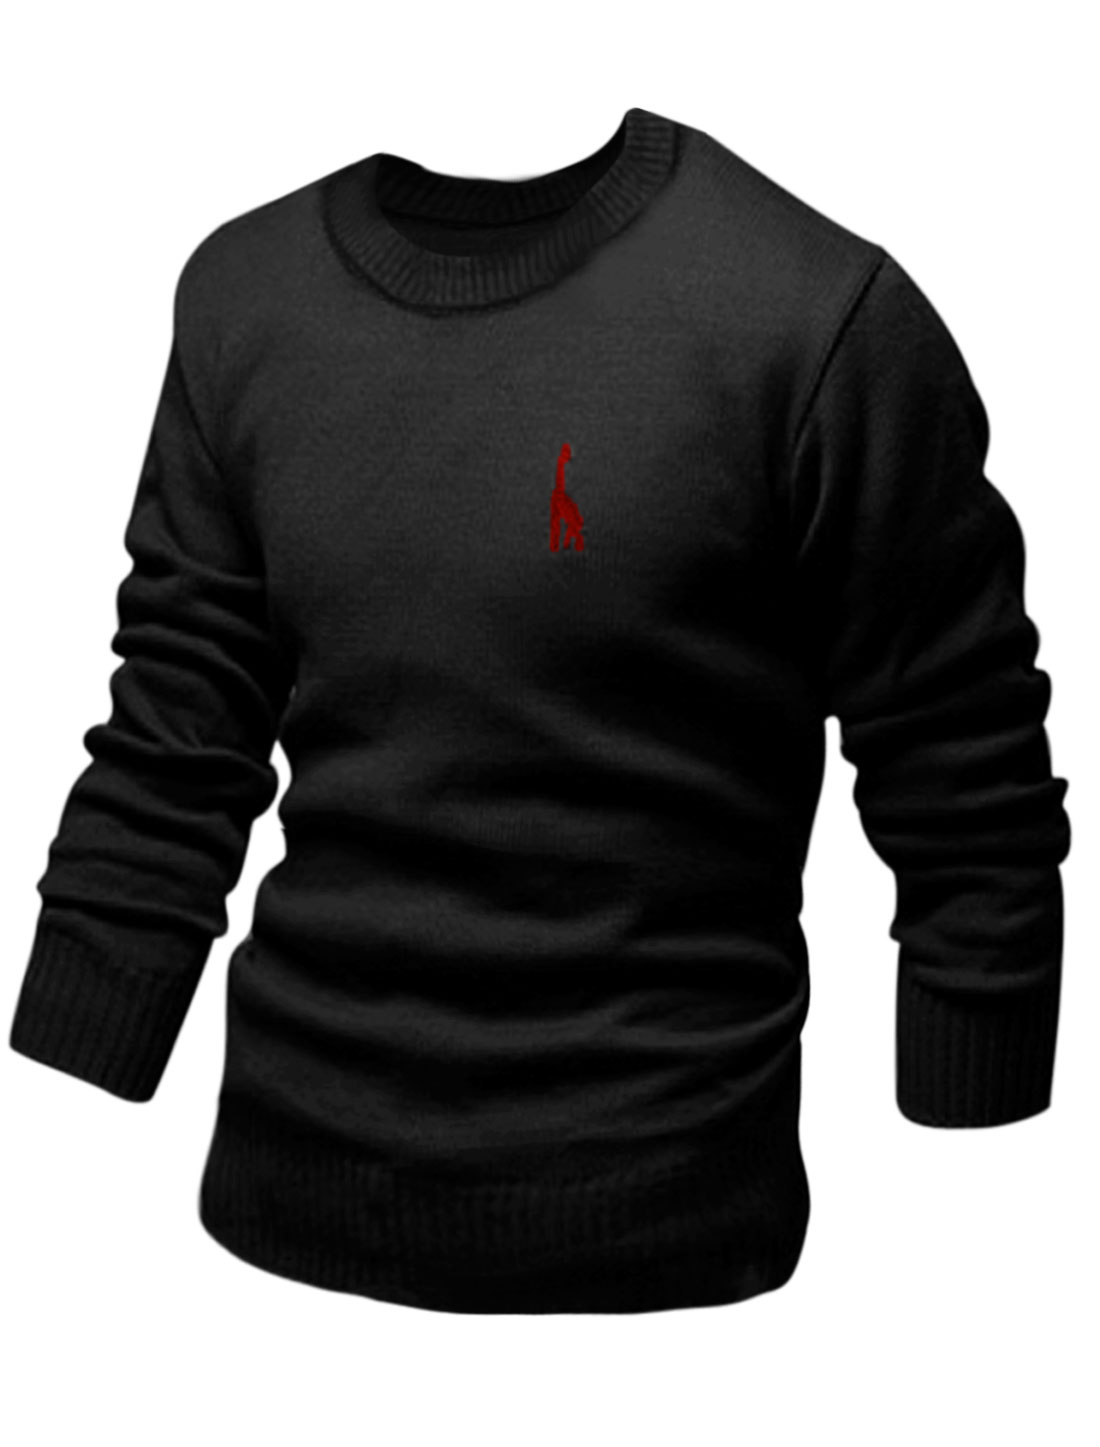 Men Round Neck Long Sleeve Embroidery Details Casula Knit Shirt Black M